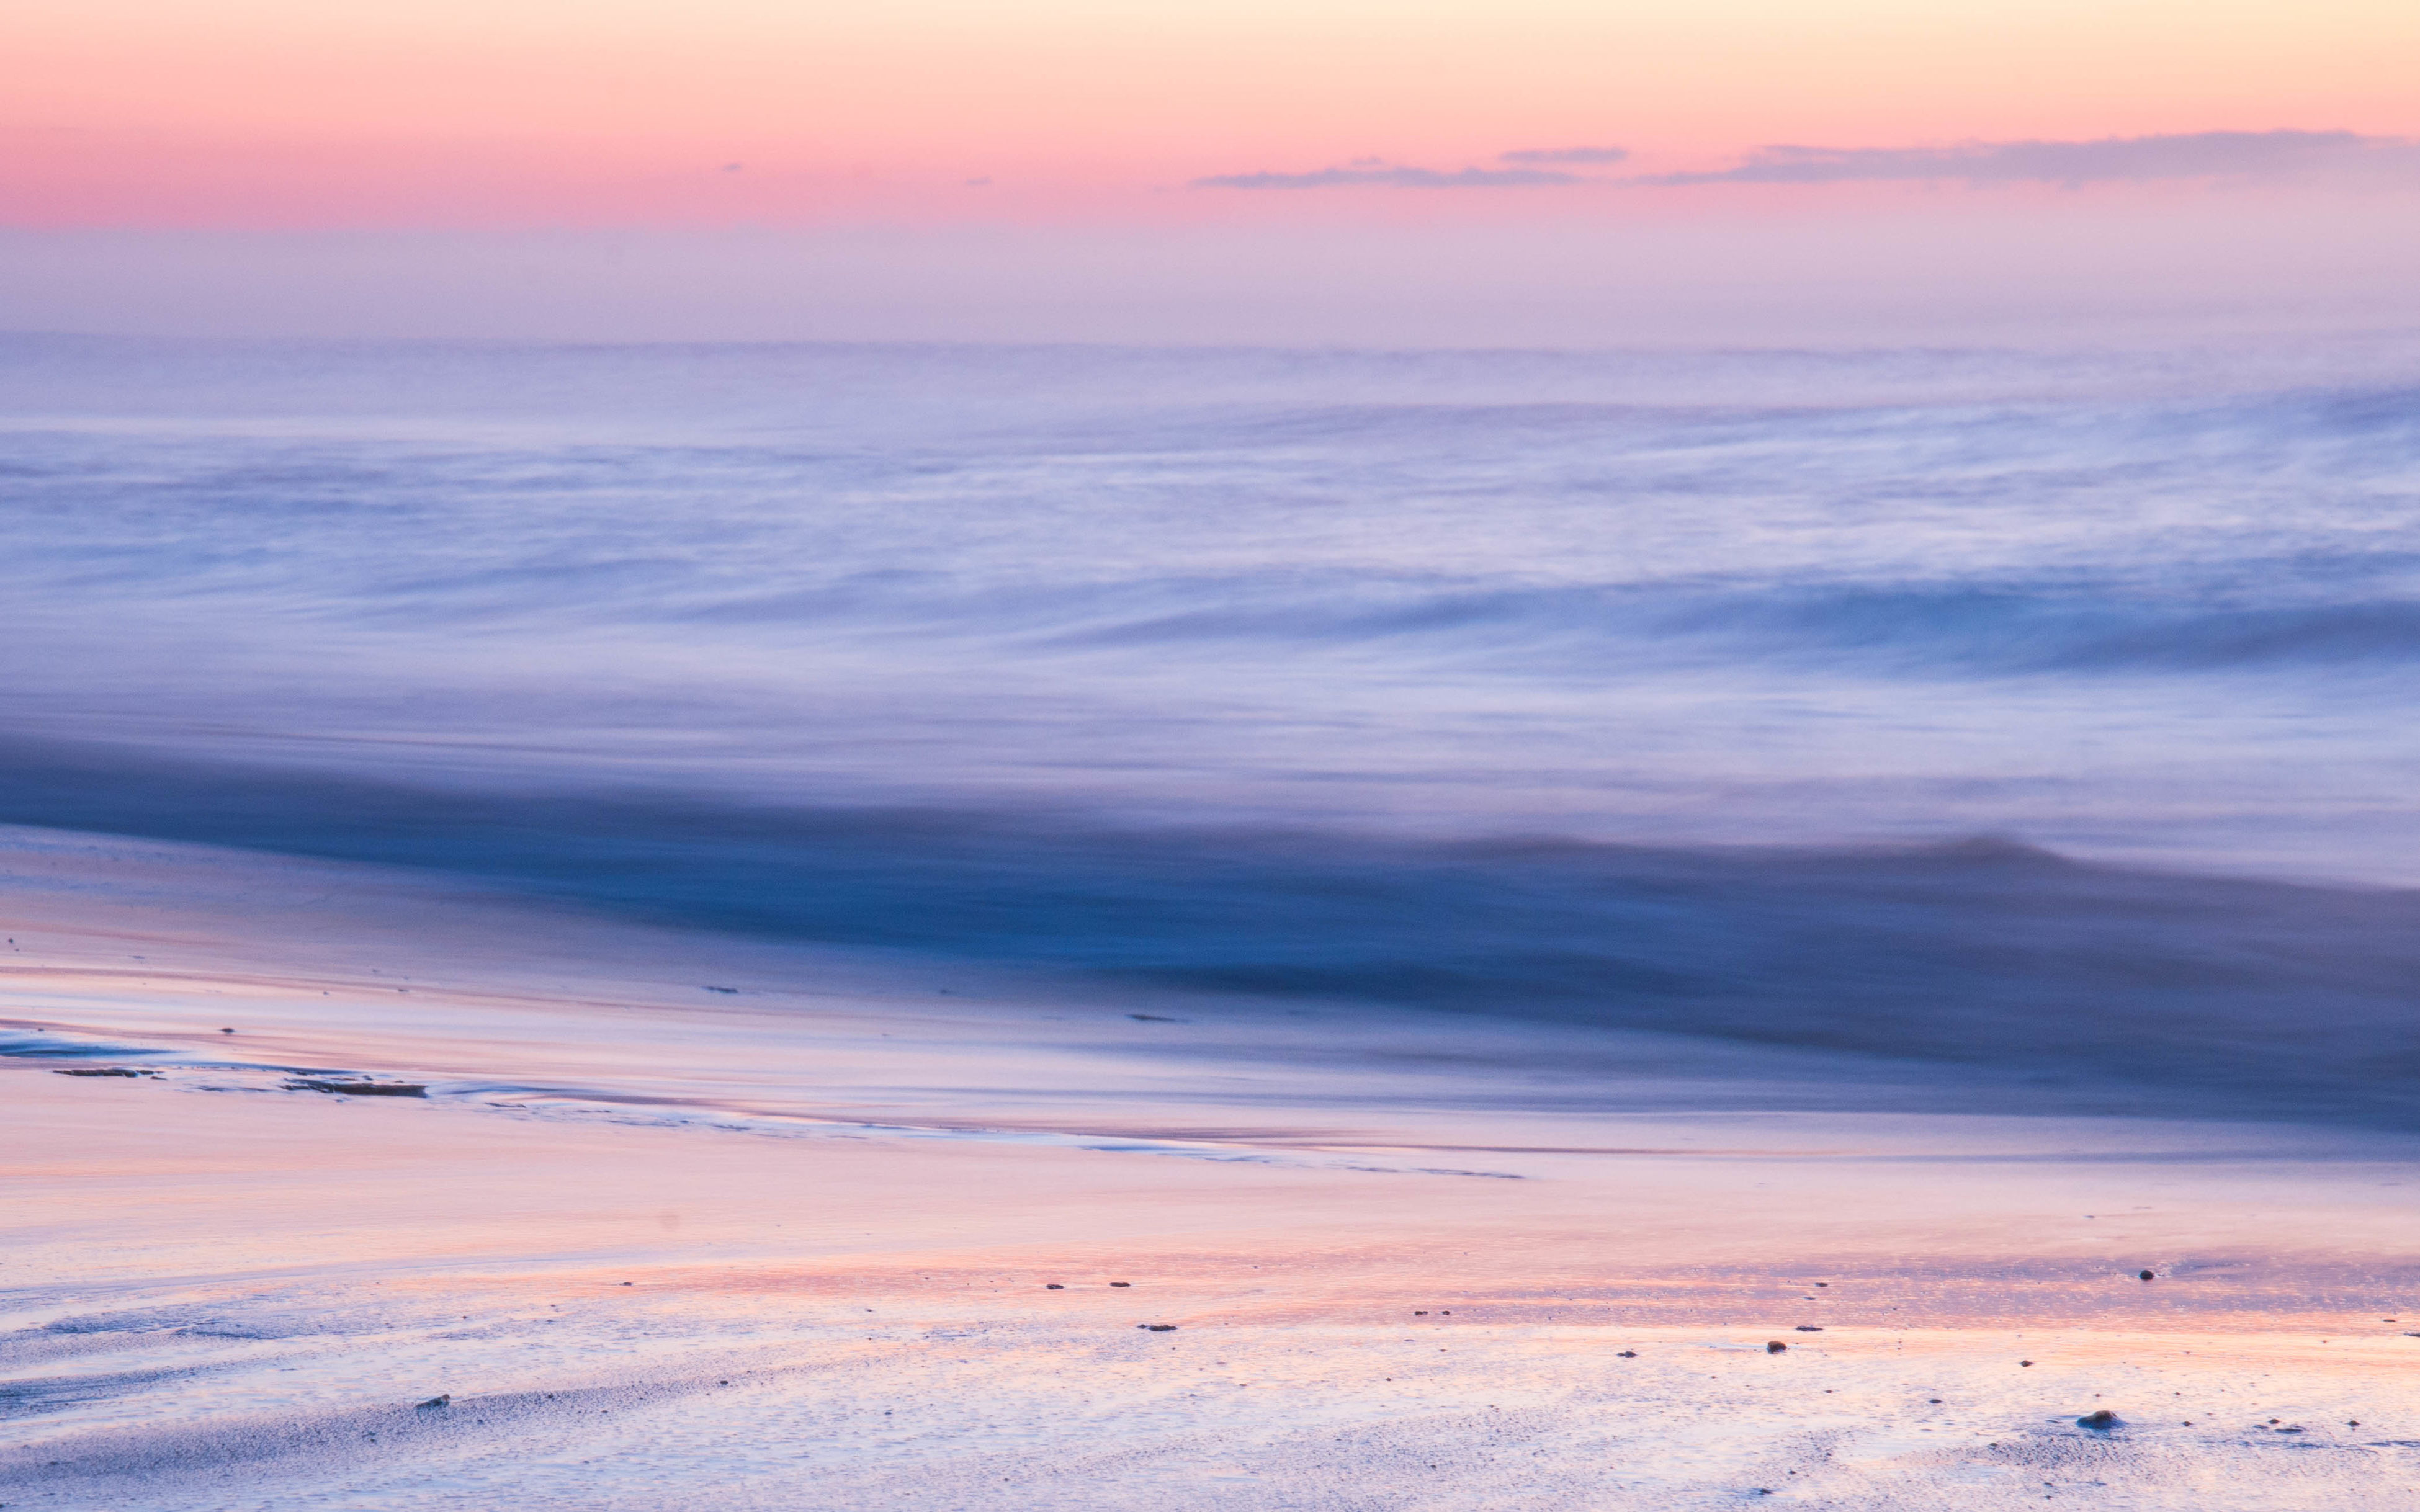 sunset, pink color, horizon over water, dramatic sky, sky, tranquility, sea, landscape, ethereal, tranquil scene, beauty in nature, beach, sand, scenics, outdoors, cloud - sky, no people, nature, day